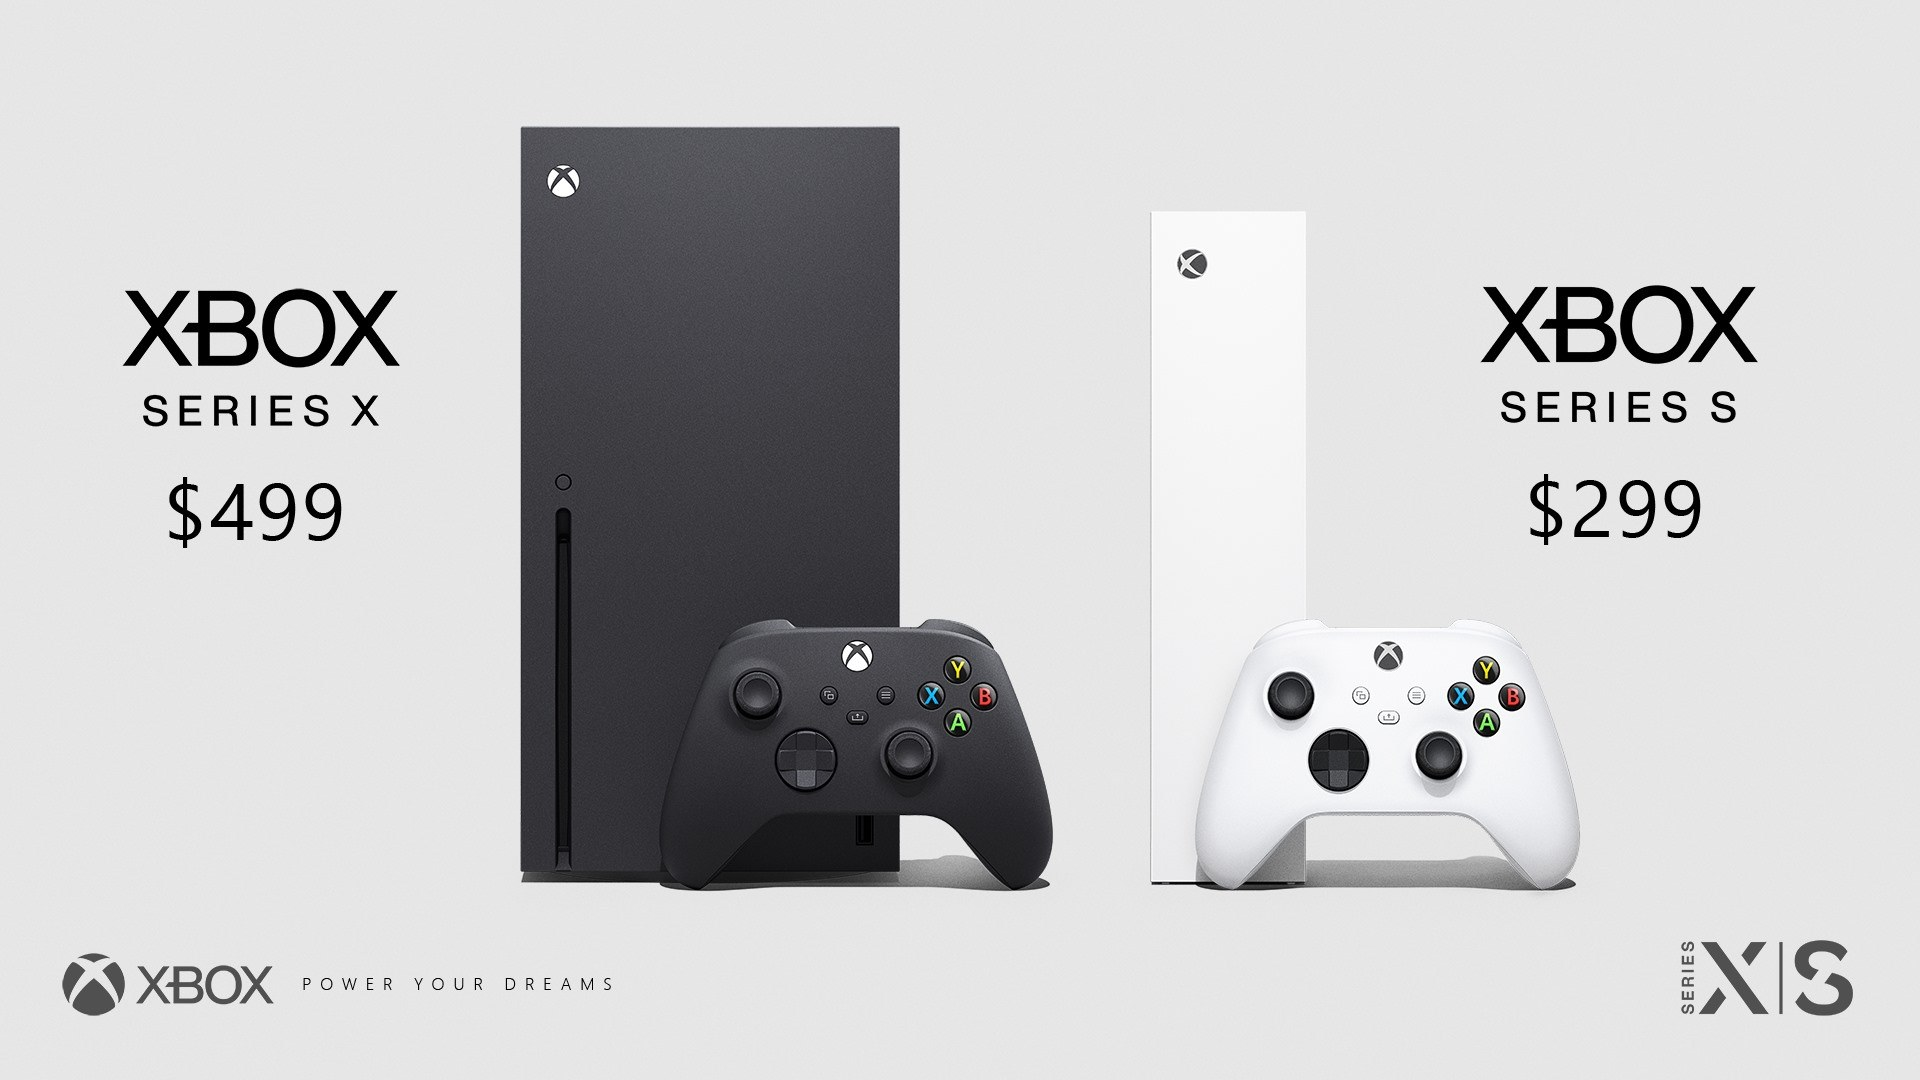 Microsoft Officially Announces Xbox Series S and Series X Consoles; Priced at US$299 and US$499 Respectively 8